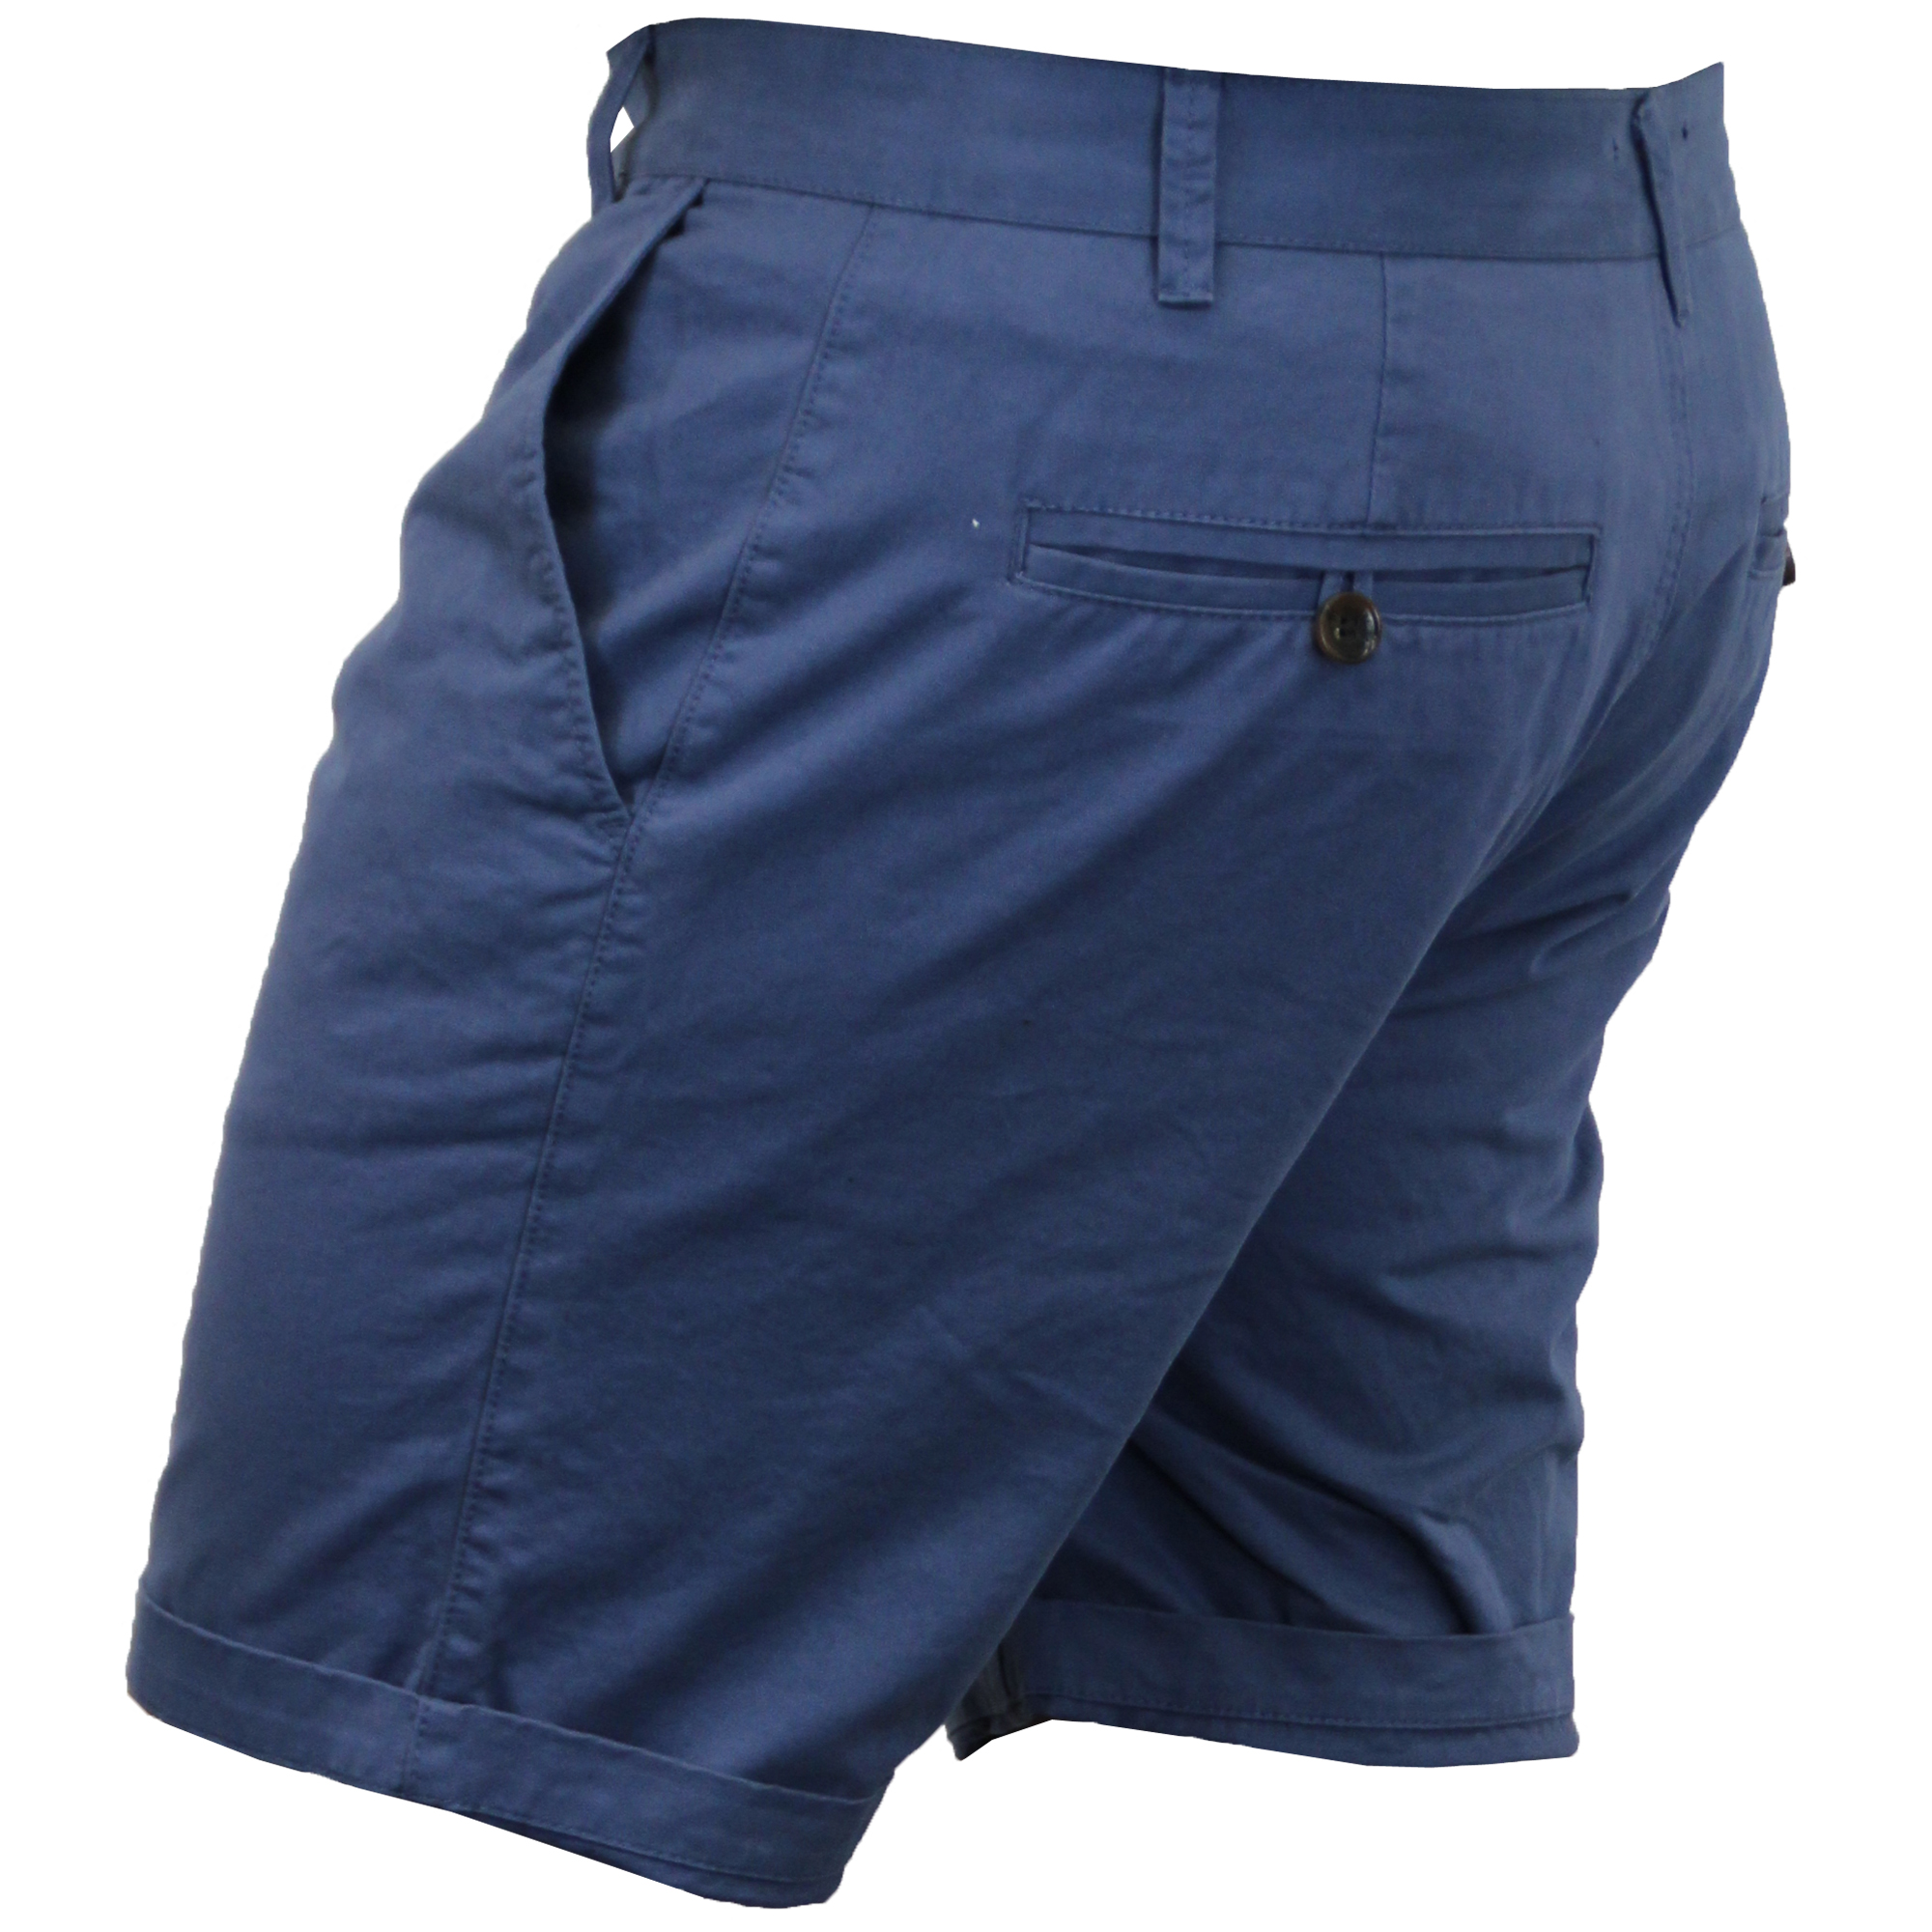 mens chino shorts mens-chino-shorts-threadbare-pants-westace-stallion-knee- ALRJDQN